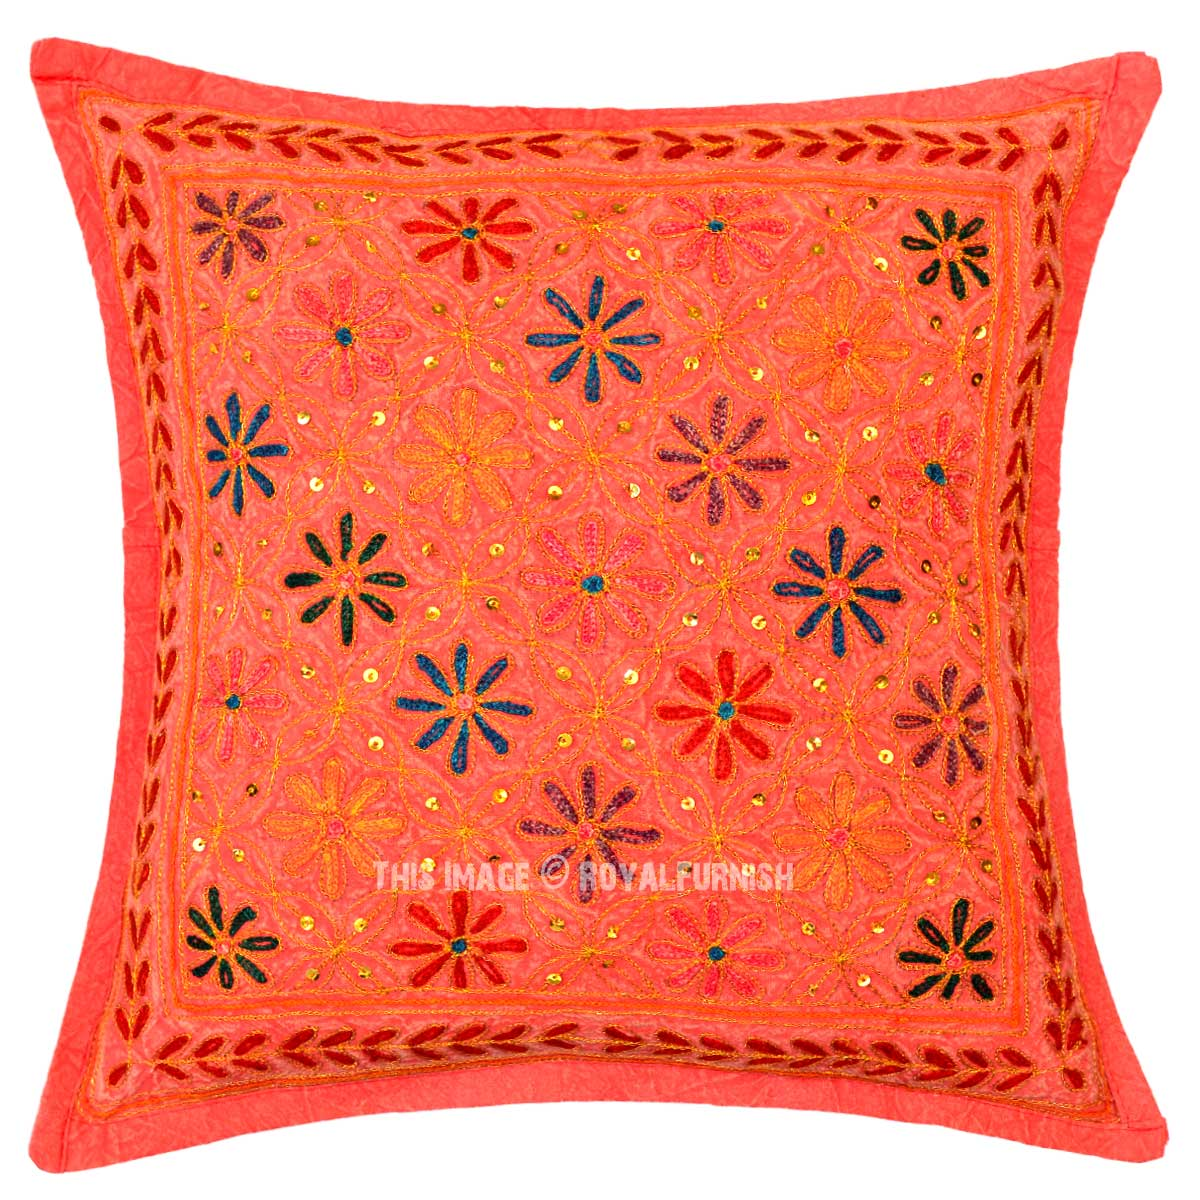 Red Decorative One-Of-A-Kind Unique Floral Embroidered Pillow Cover 16